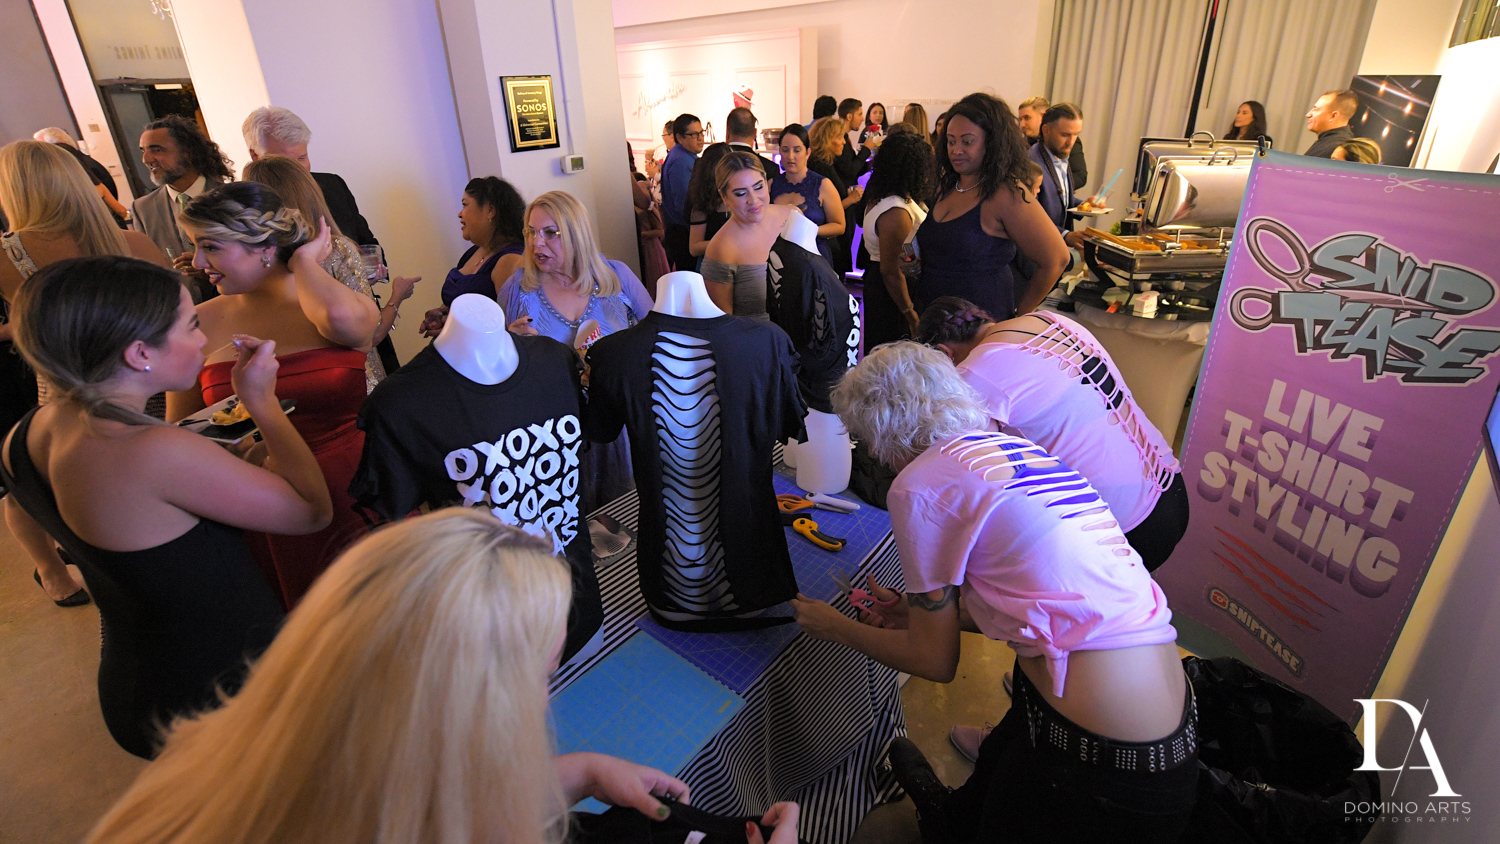 snip tease shirts at Fashion Theme Bat Mitzvah at Gallery of Amazing Things by Domino Arts Photography